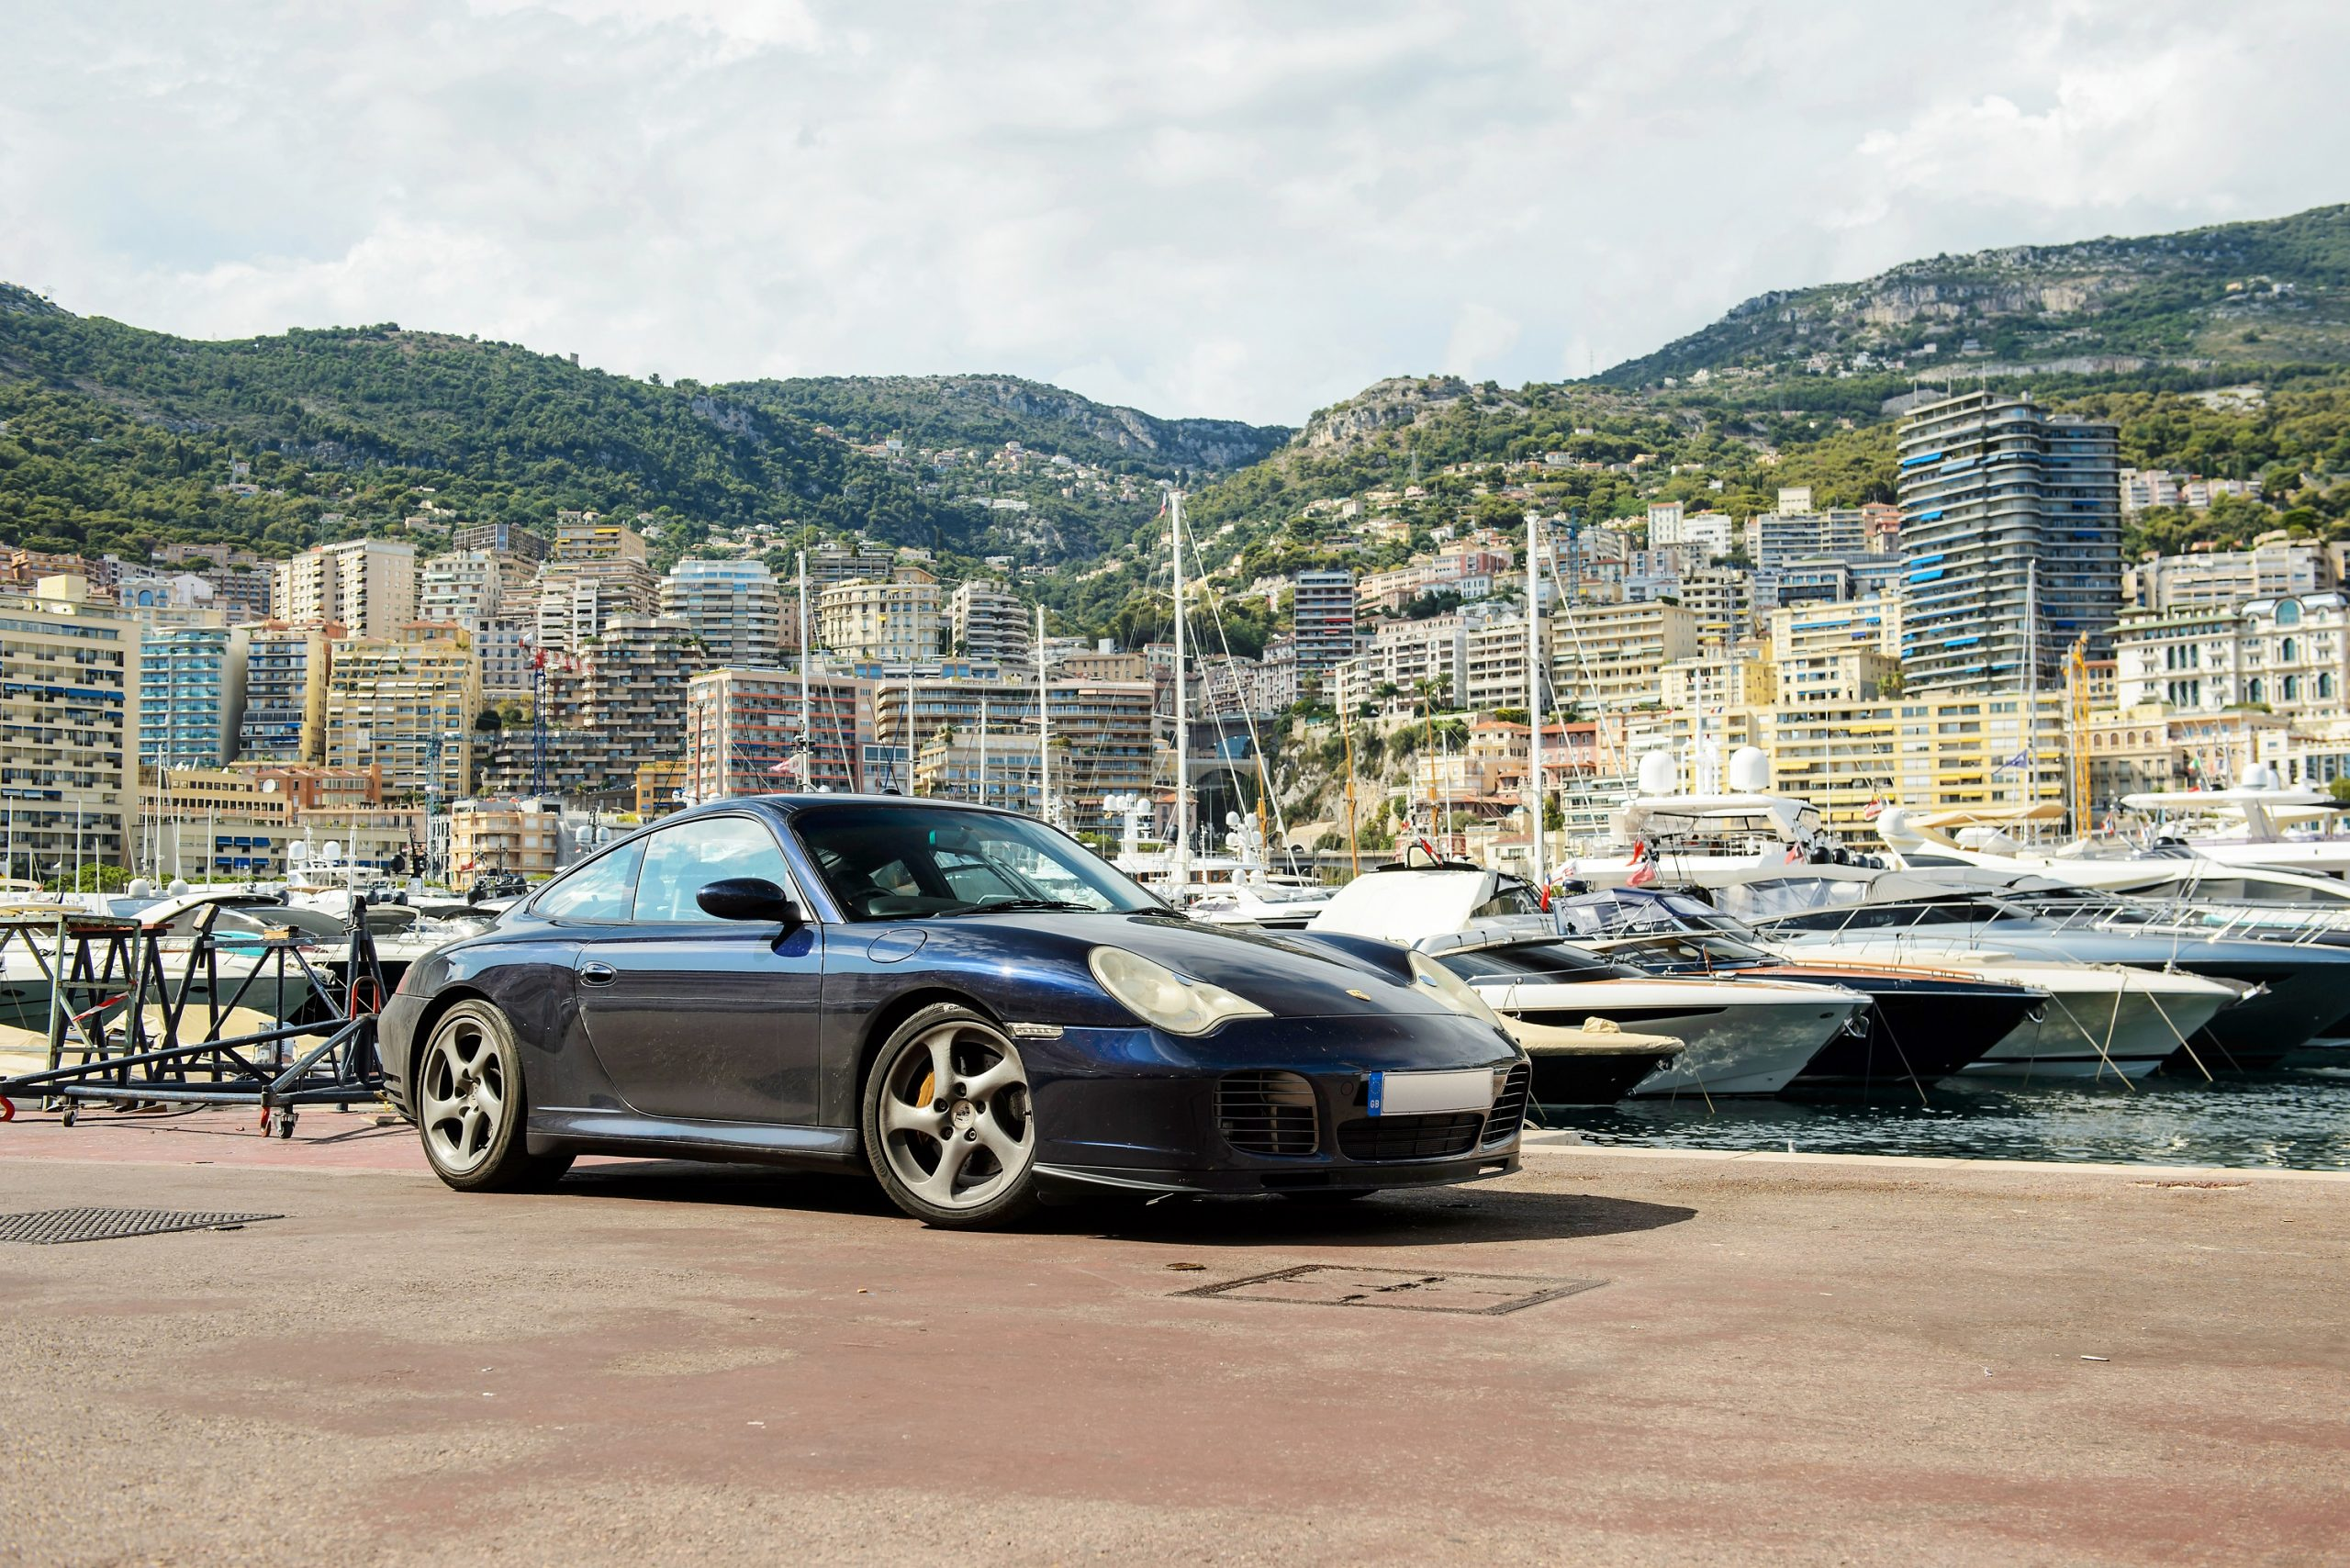 A dark blue 996 Porsche 911 on the docks in Monaco, shot from the 3/4 angle